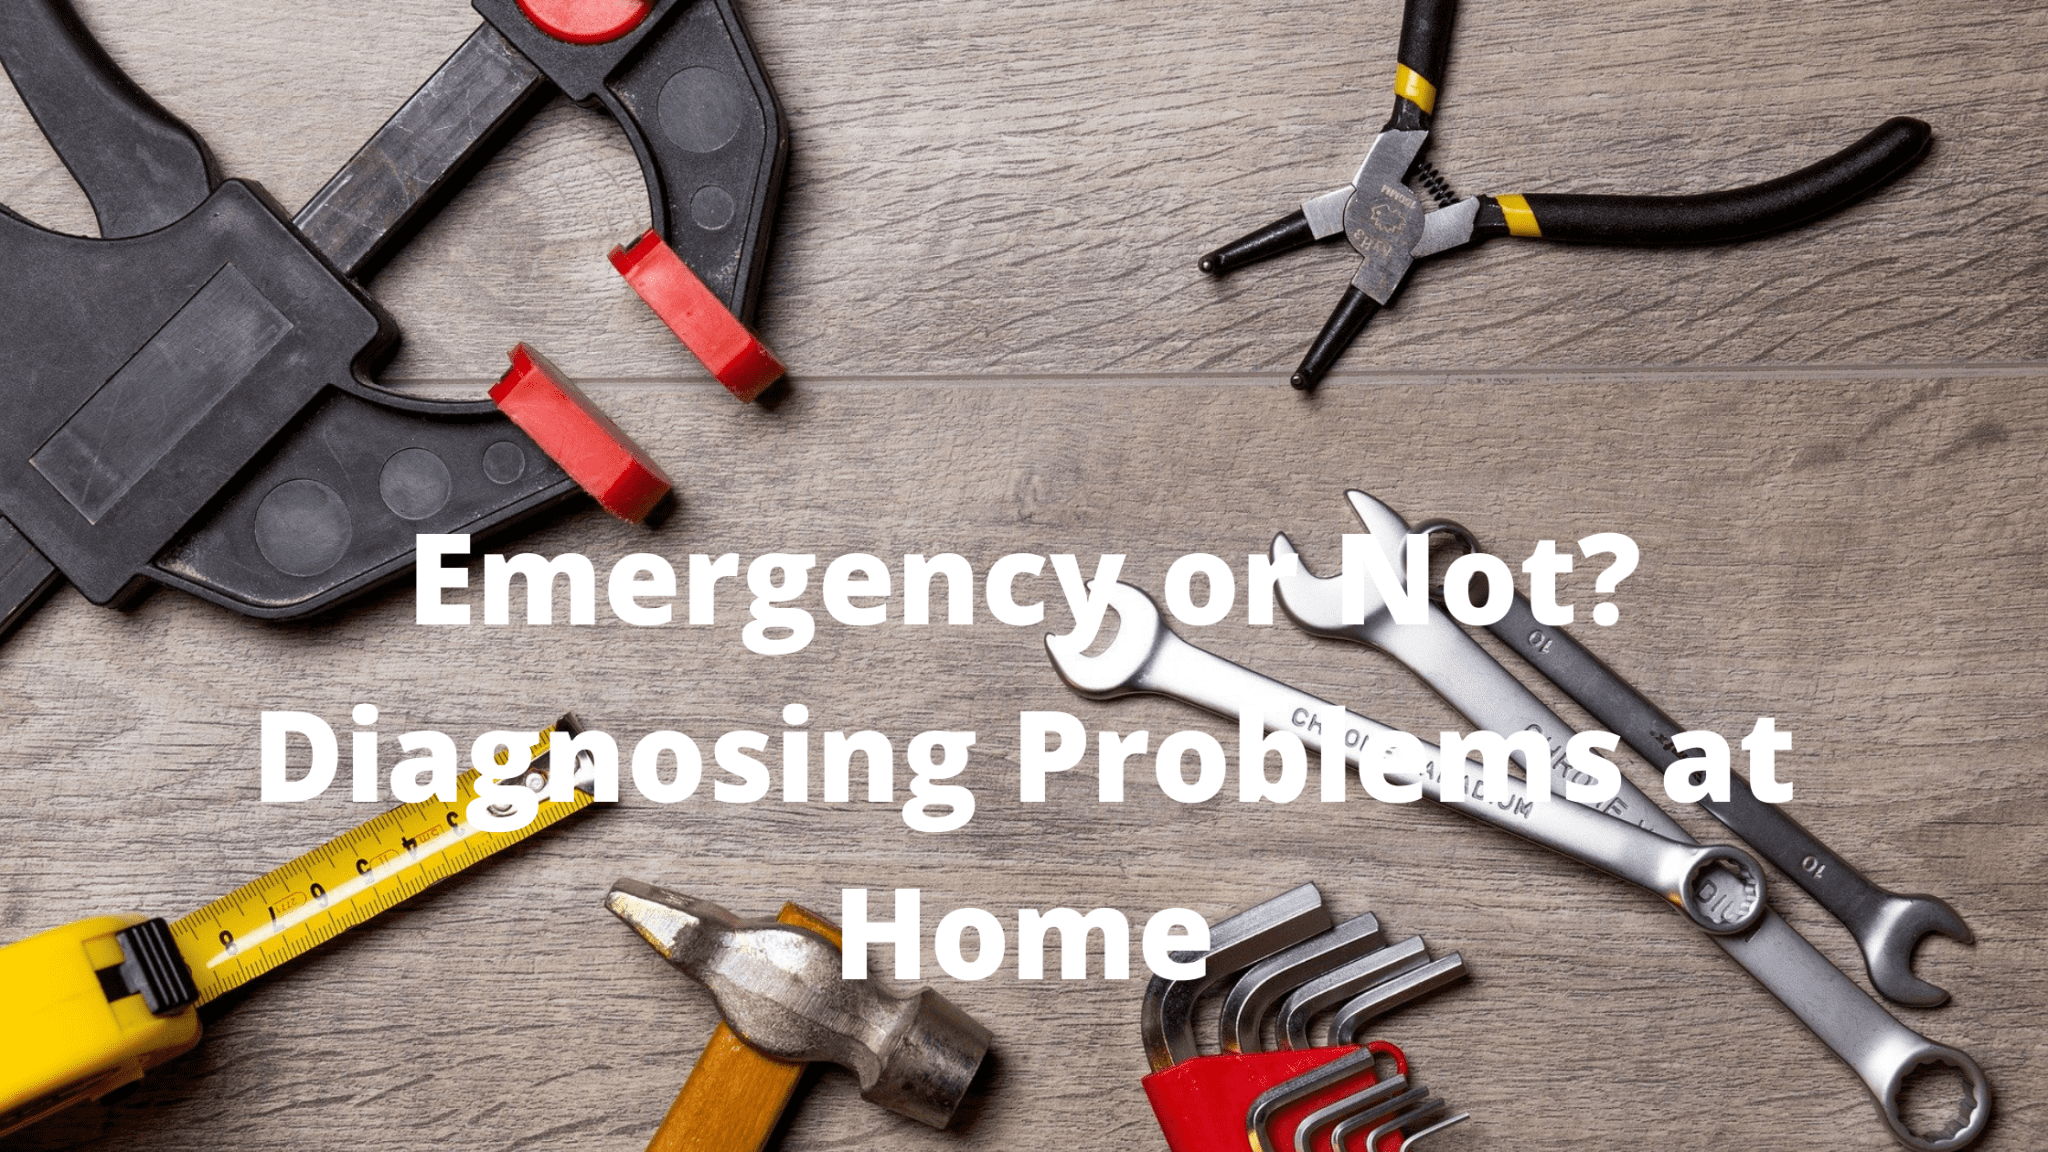 Emergency or Not? Diagnosing Problems at Home